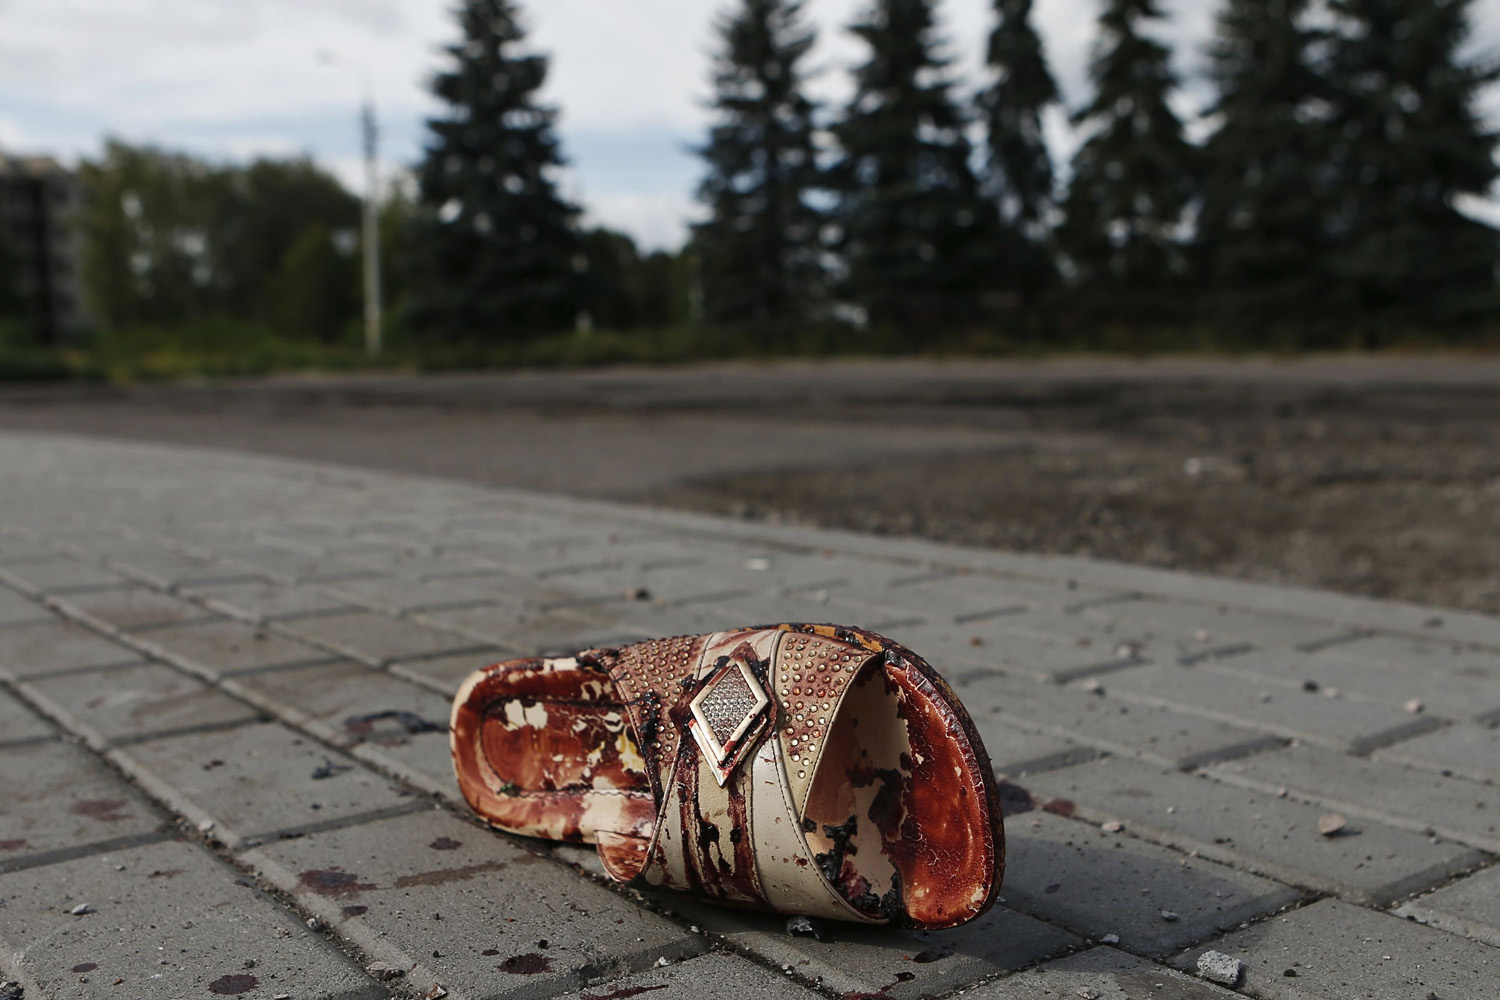 Aug. 19, 2014. A slipper lies near bloodstains on a street after recent shelling in the settlement of Makiivka, on the outskirts of Donetsk.